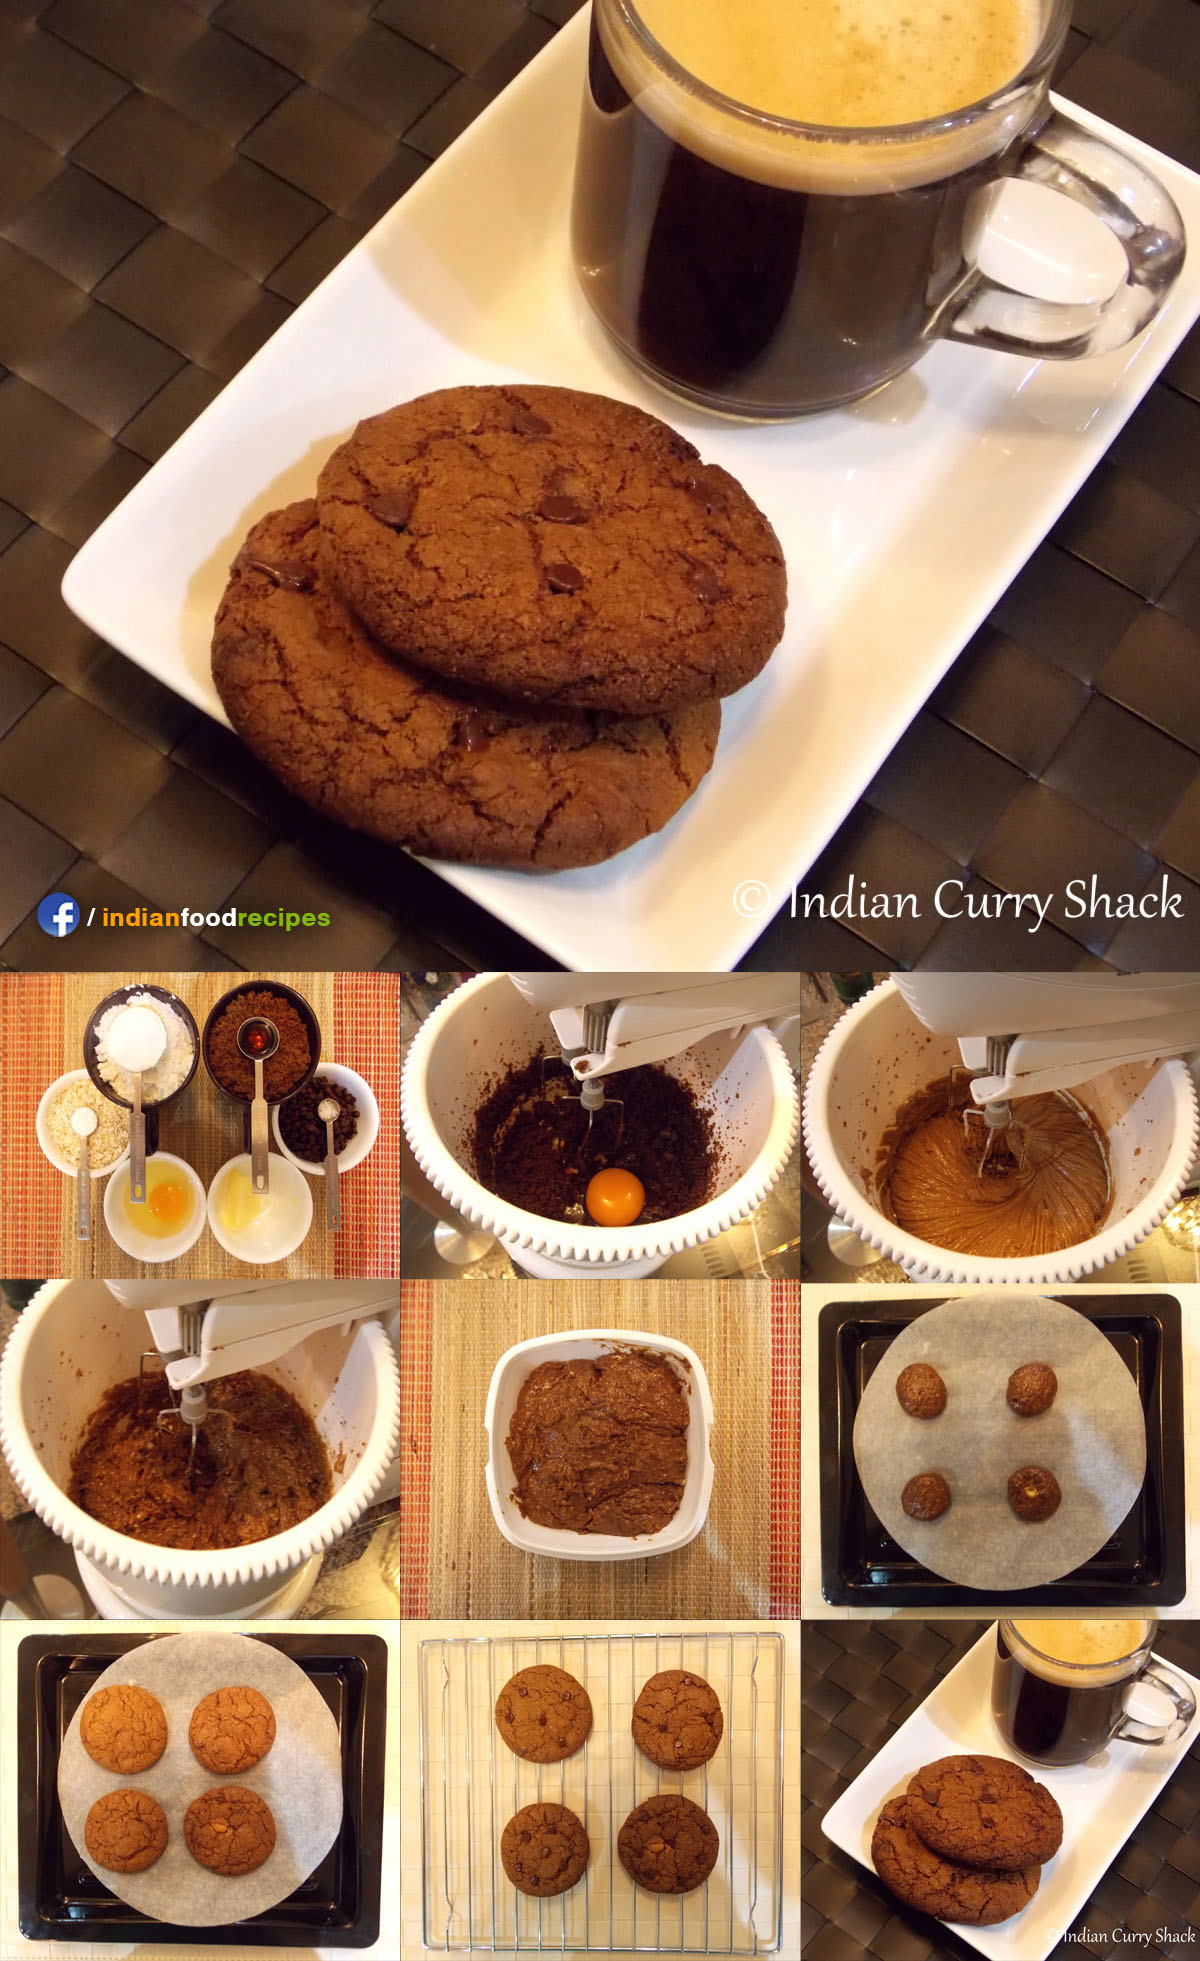 Chocolate Chip Oat Cookies recipe step by step